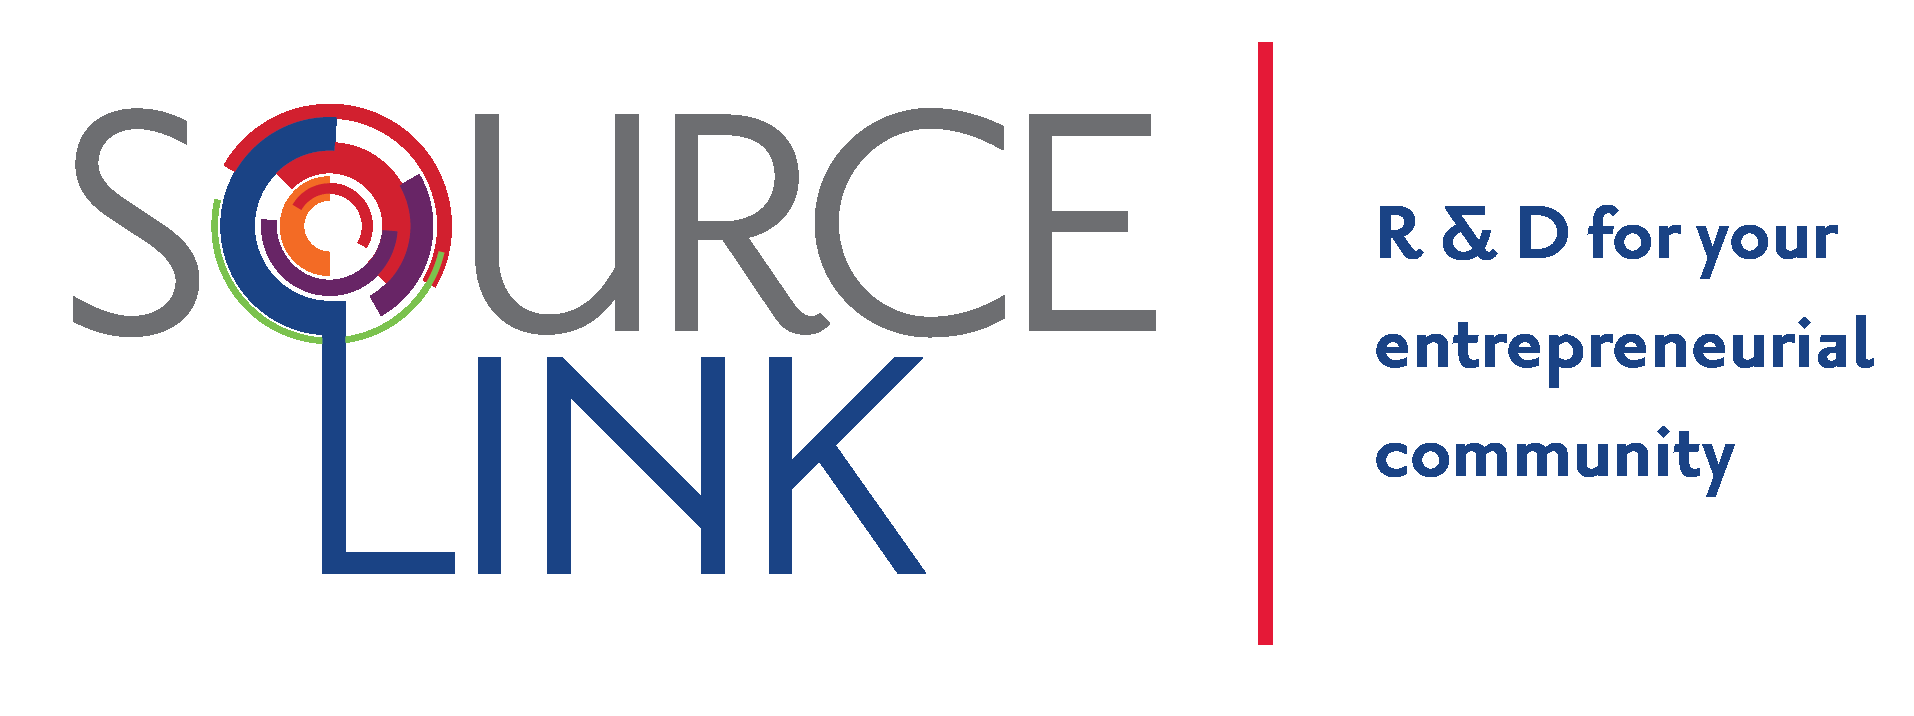 2015_SourceLinkLogo_Tagline2_4C-01 (cropped)